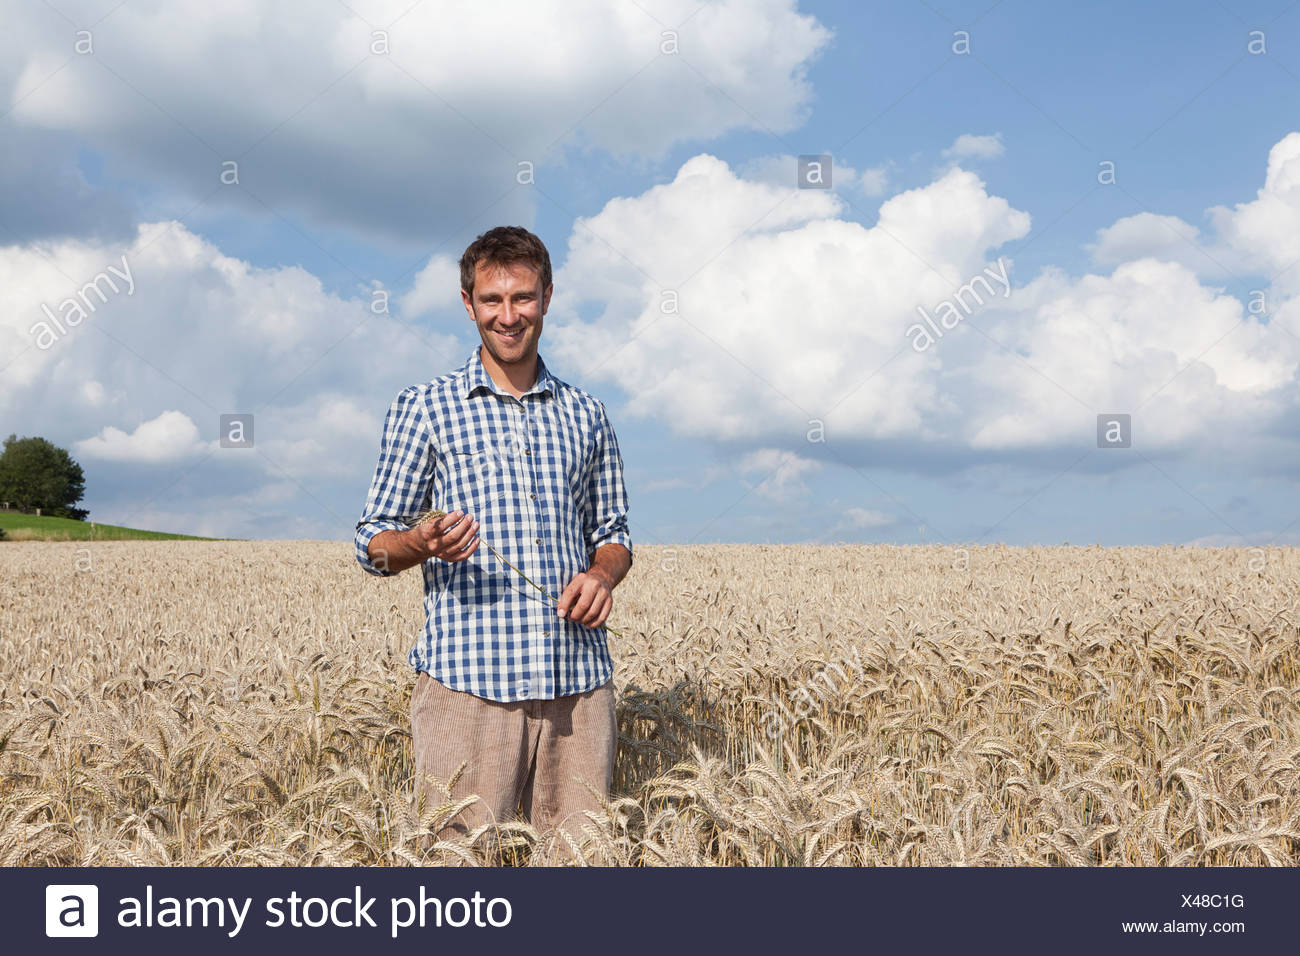 Germany, Bavaria, Altenthann, Man standing in wheat field, smiling, portrait - Stock Image